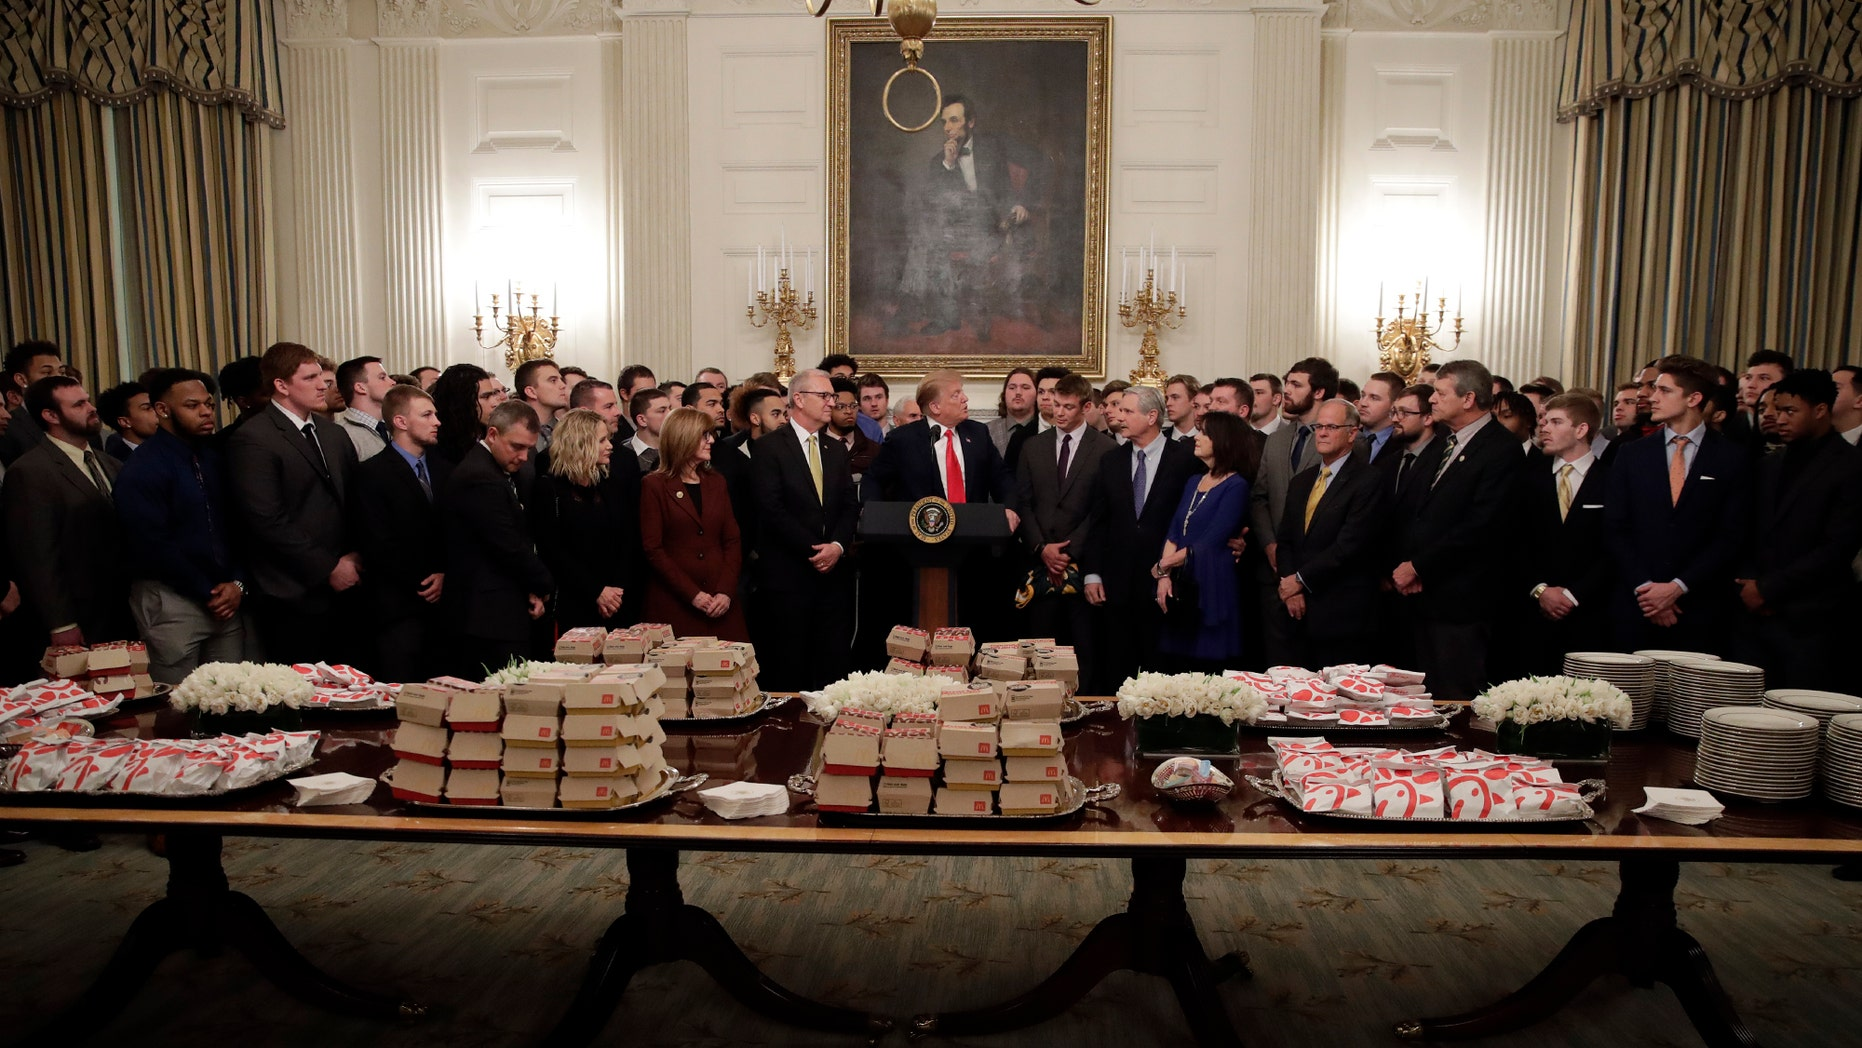 North Dakota State Was Also Served Fast Food at the White House